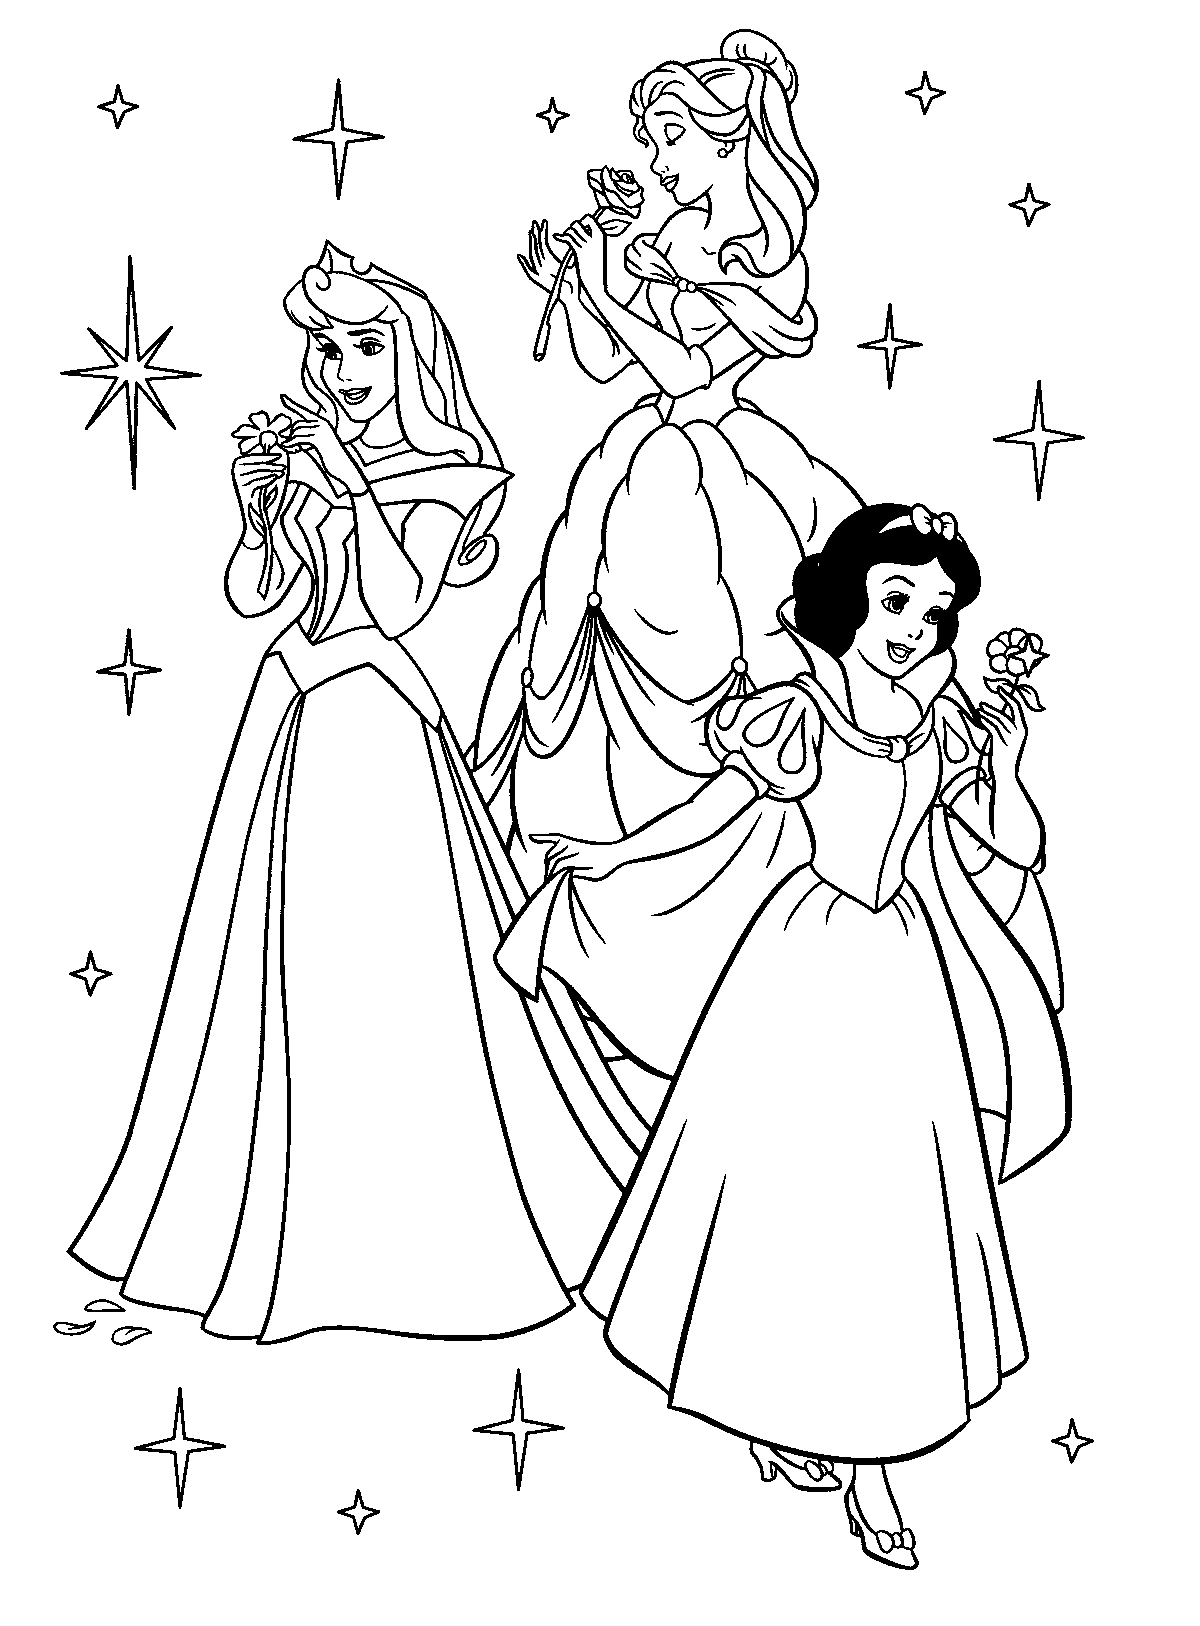 Disney Princesses Coloring Pages Princess Coloring Pages 6  Coloring Kids